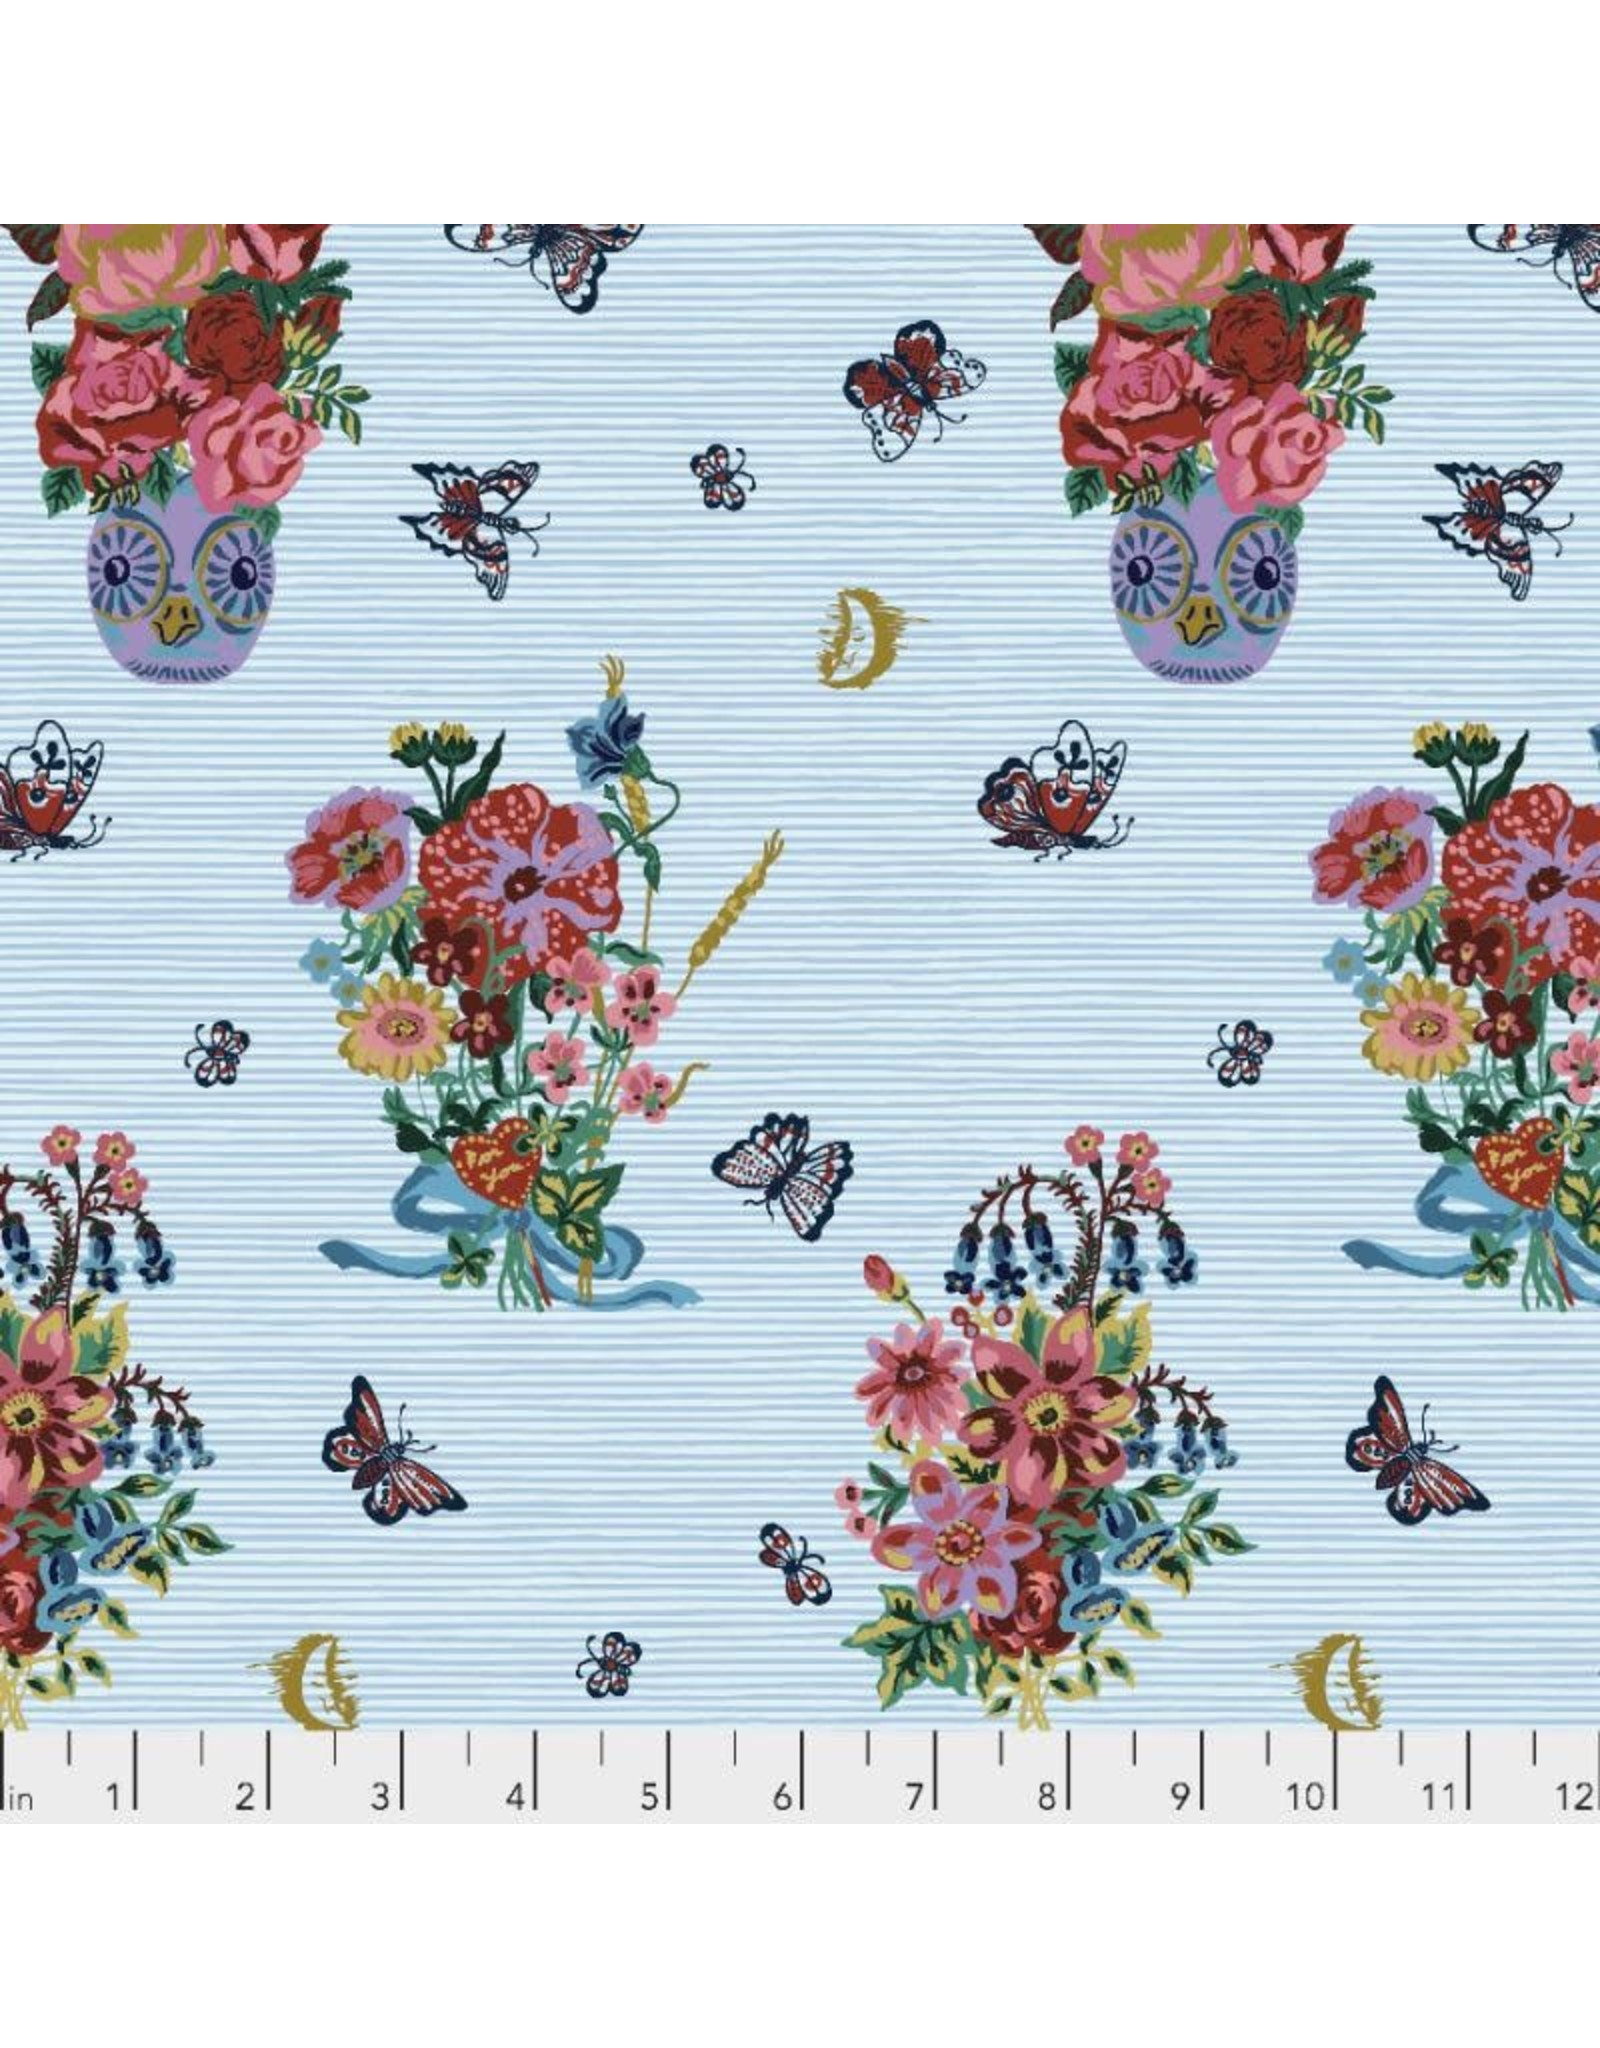 Nathalie Lété Sunday in the Country, Early Morning in Luna, Fabric Half-Yards PWNL009